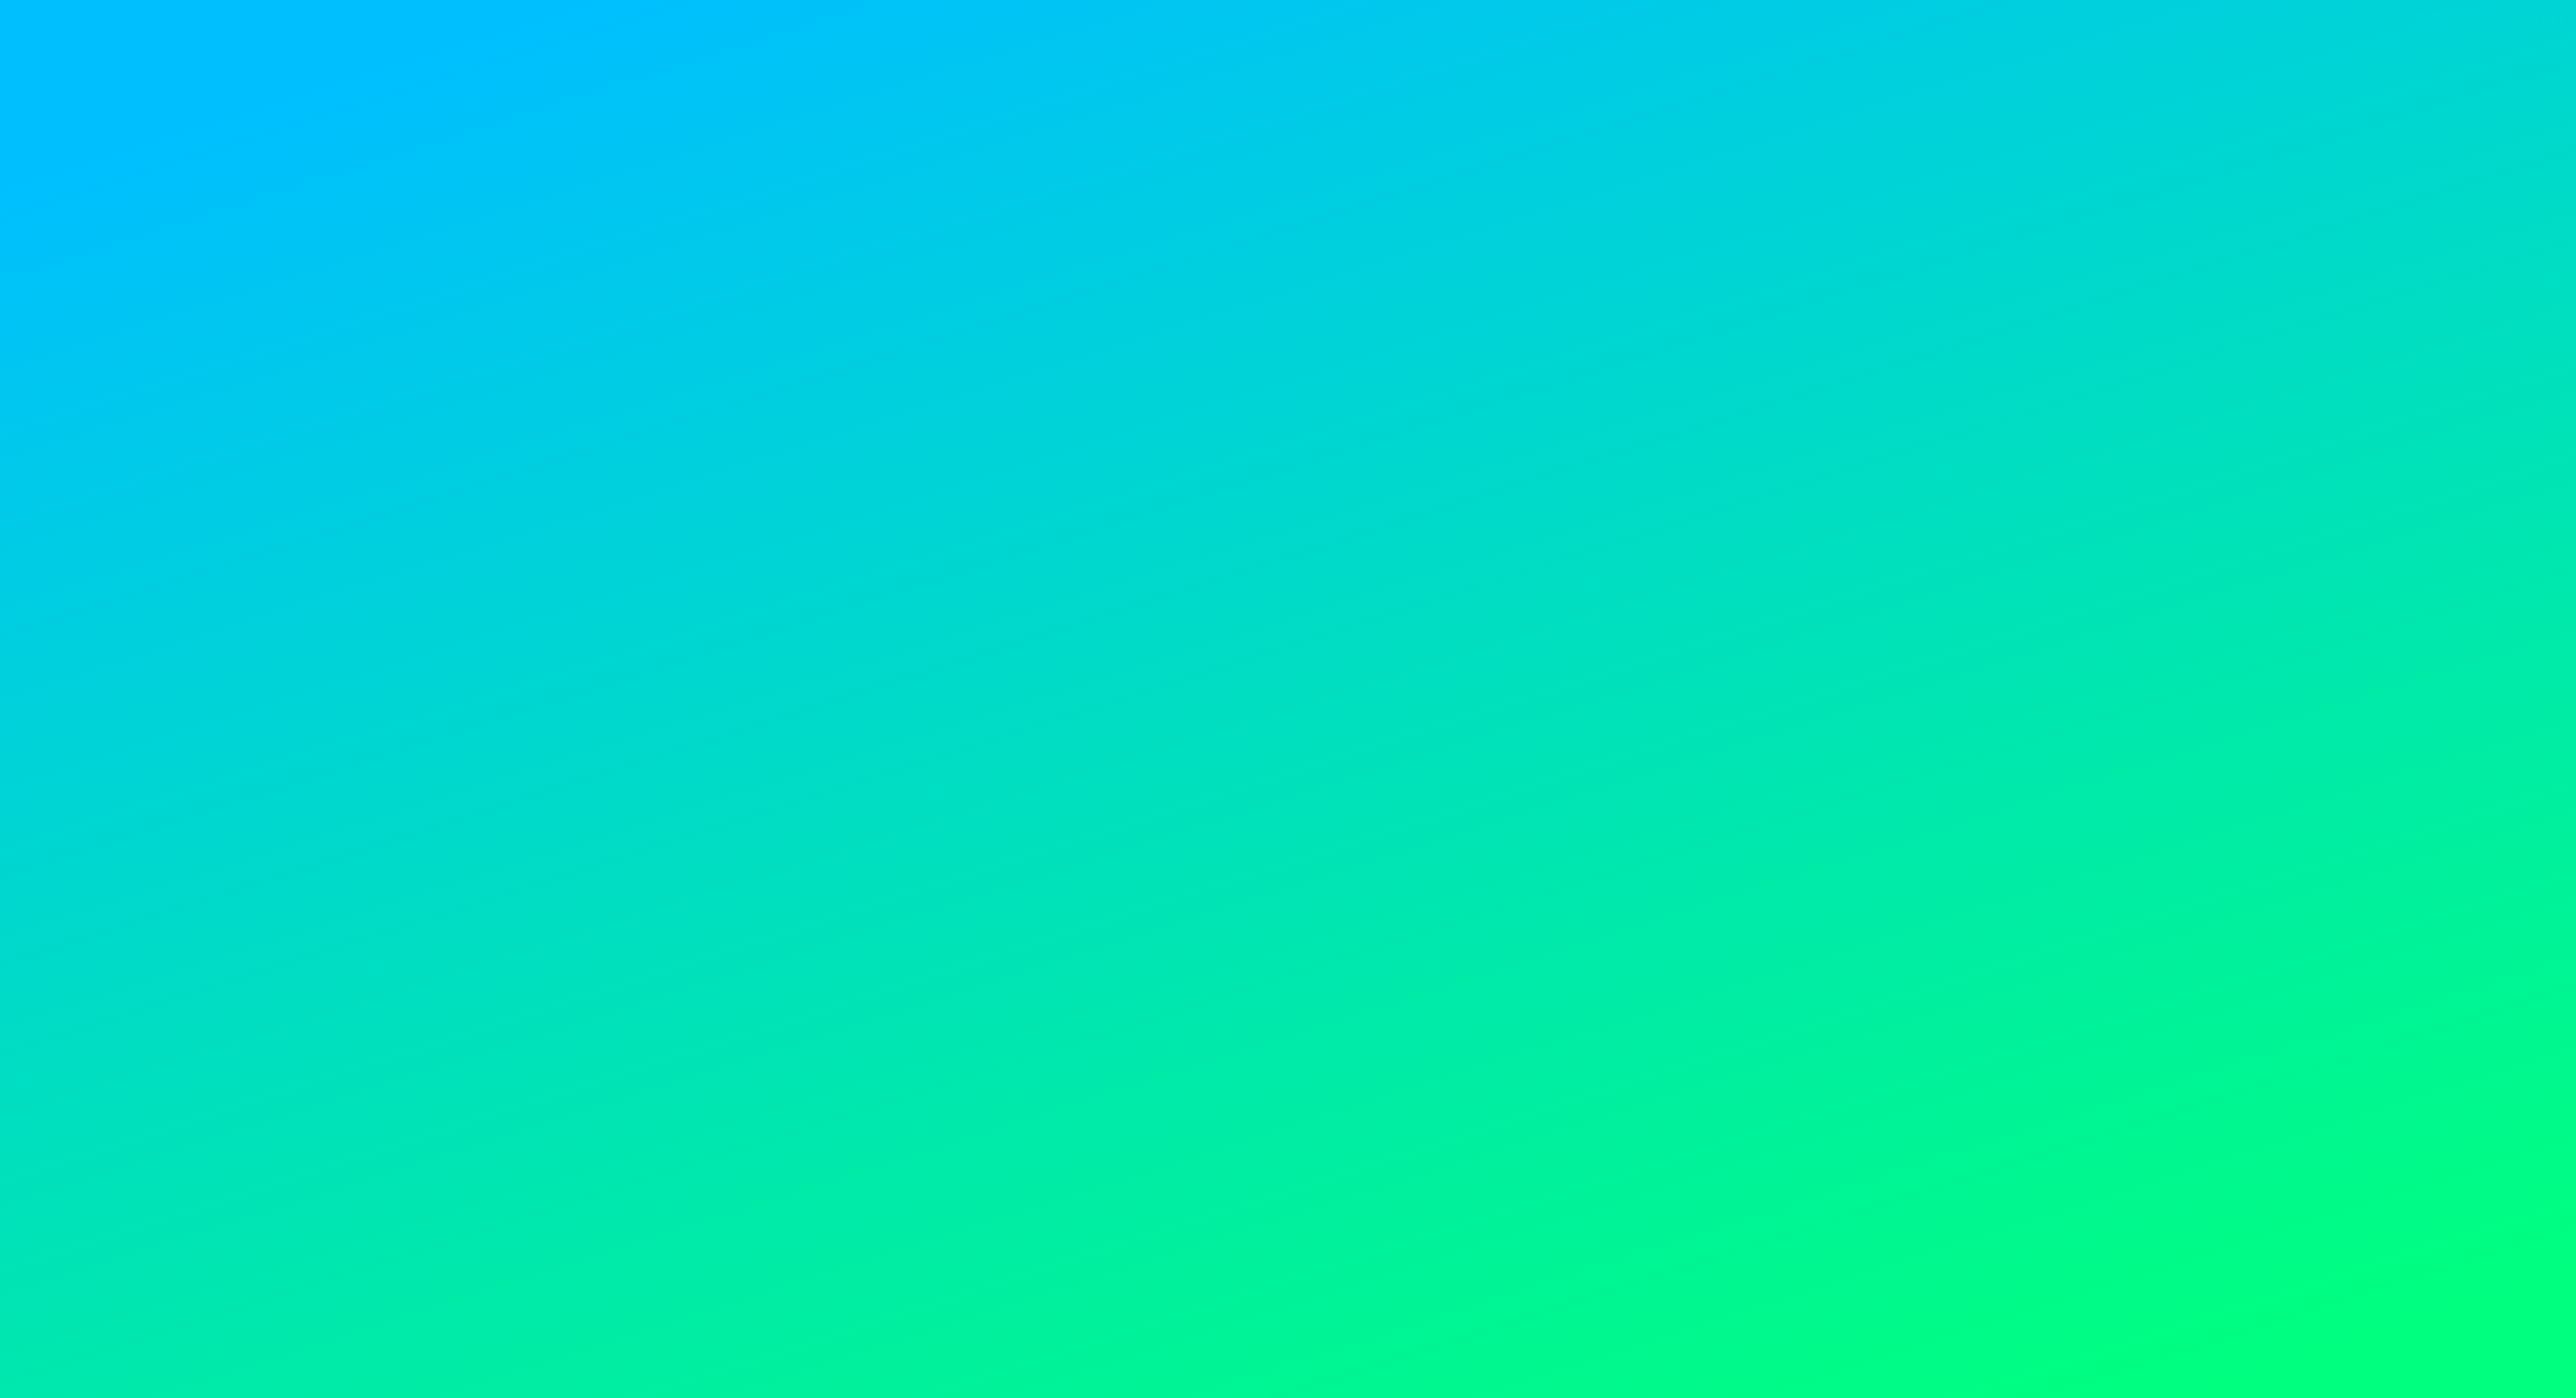 blue and green gradient background